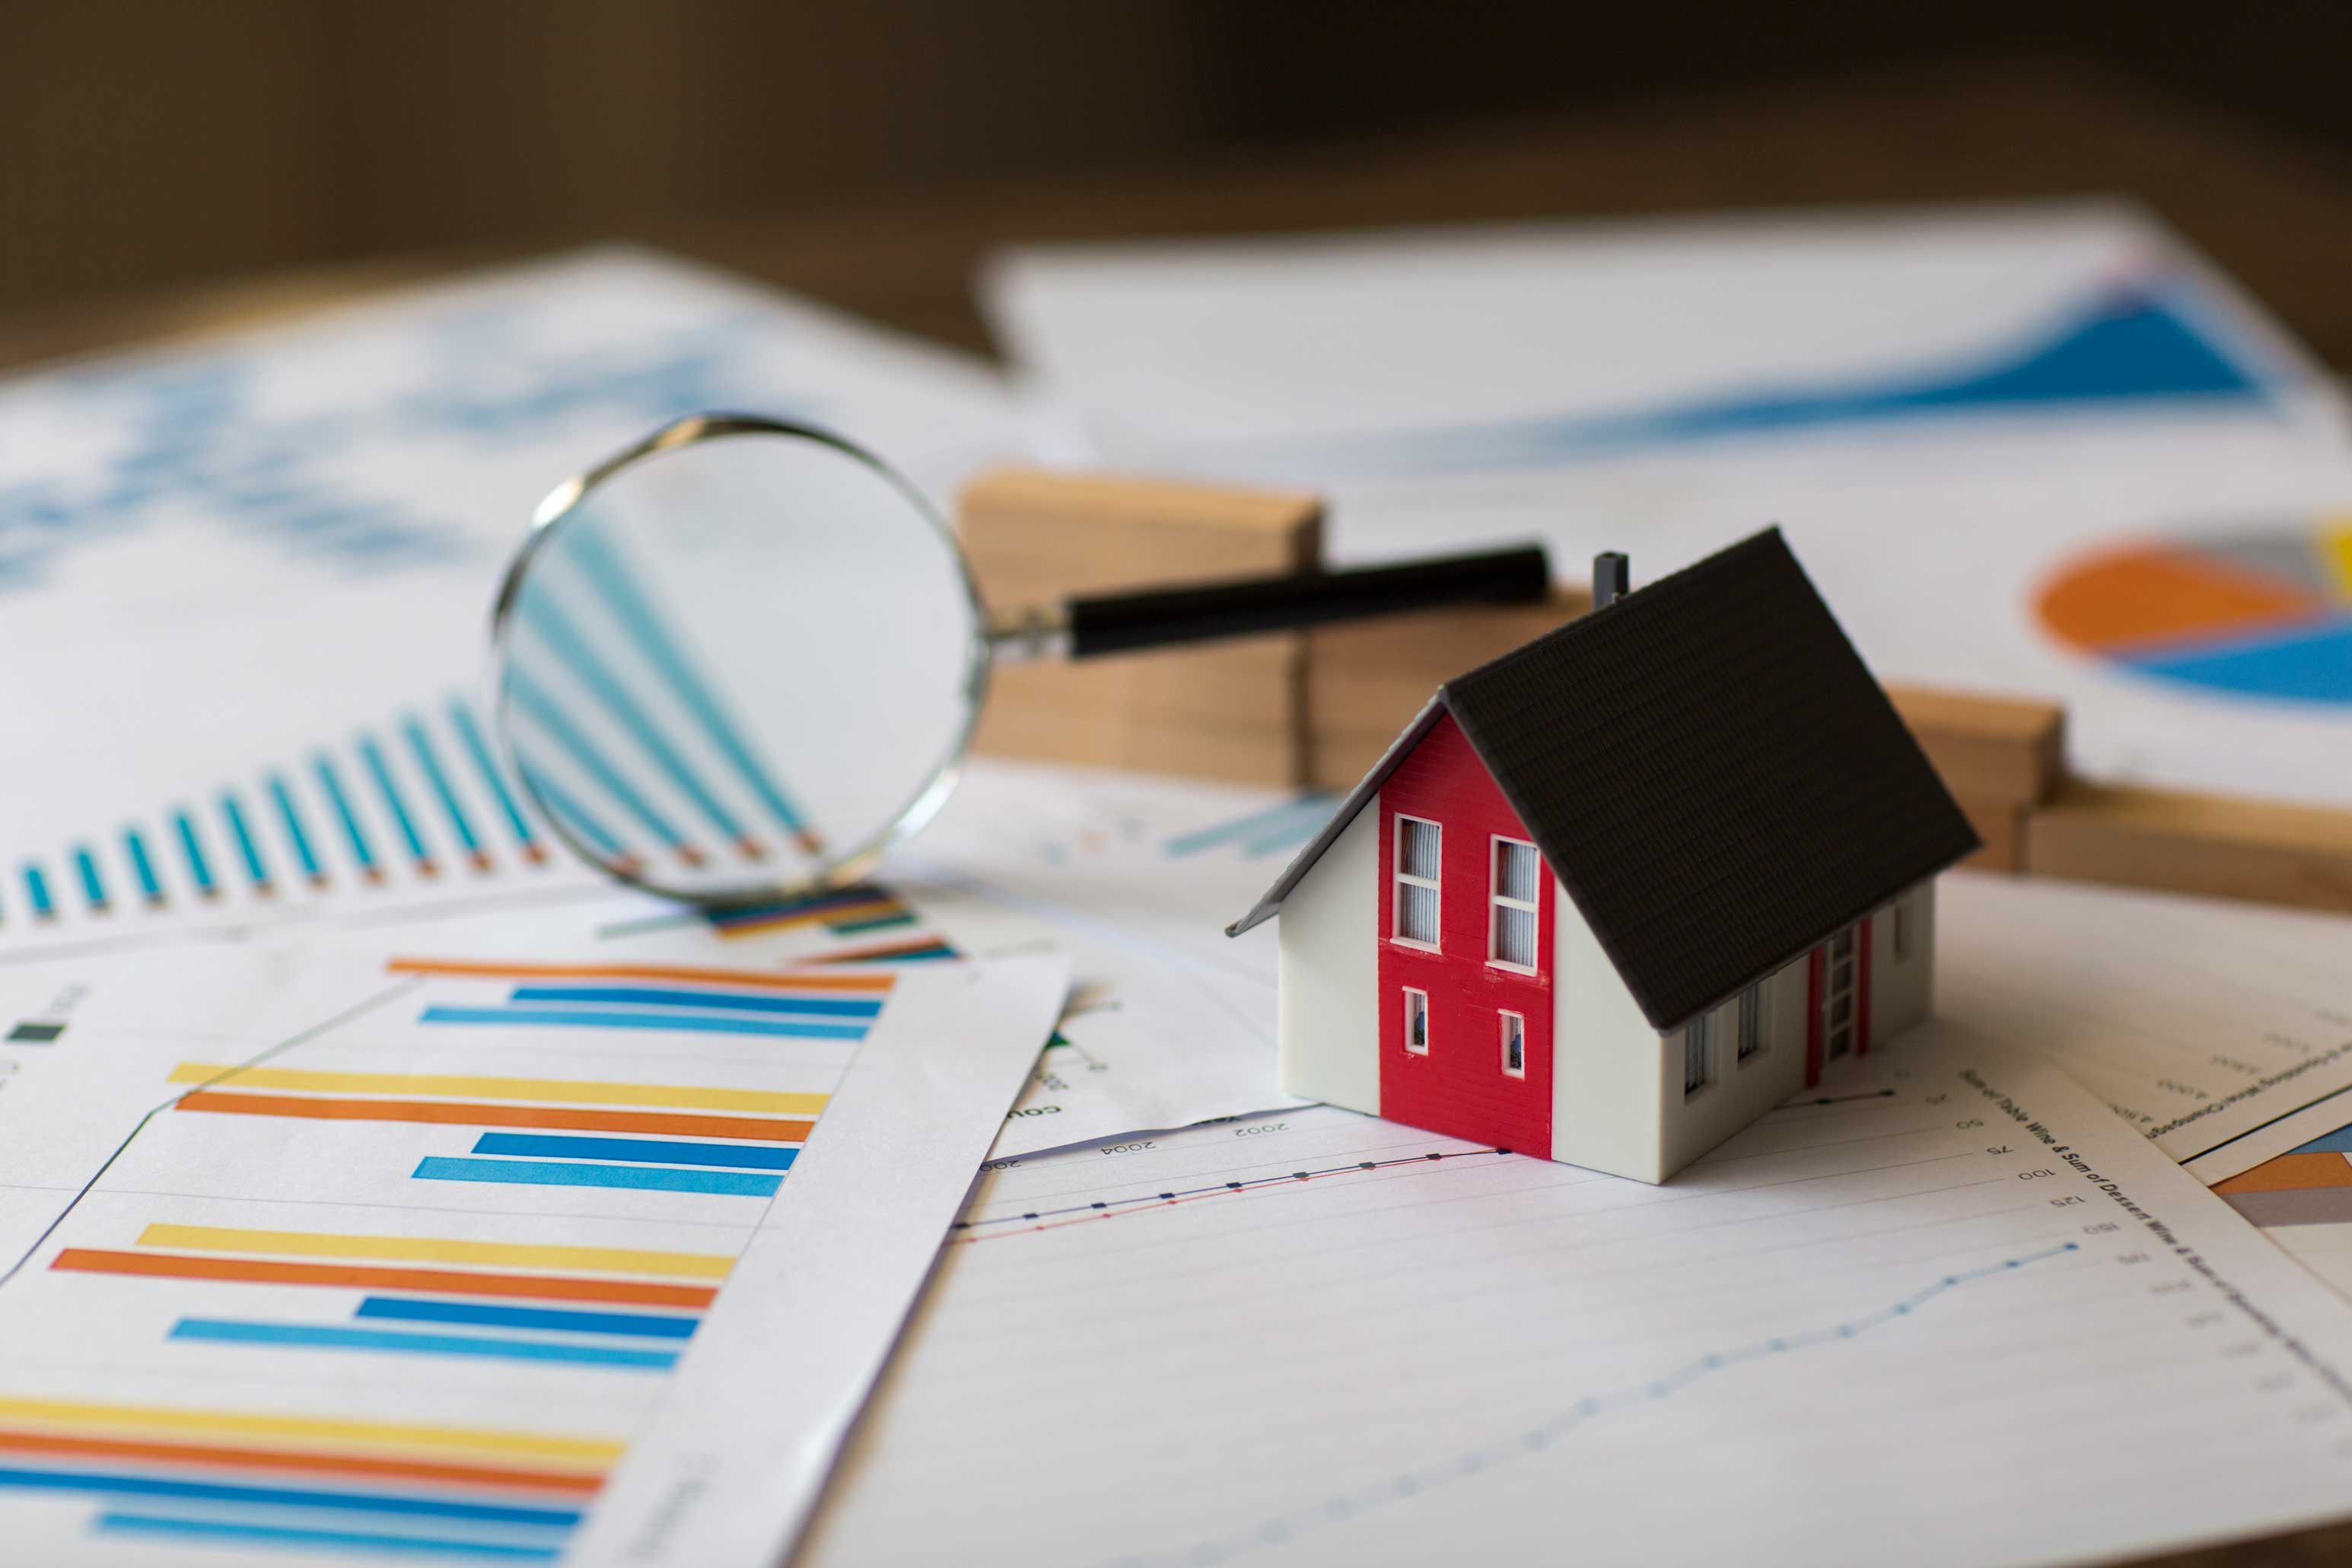 Photo of a miniature house on a set of papers with financial graphs and a magnifying glass in the background